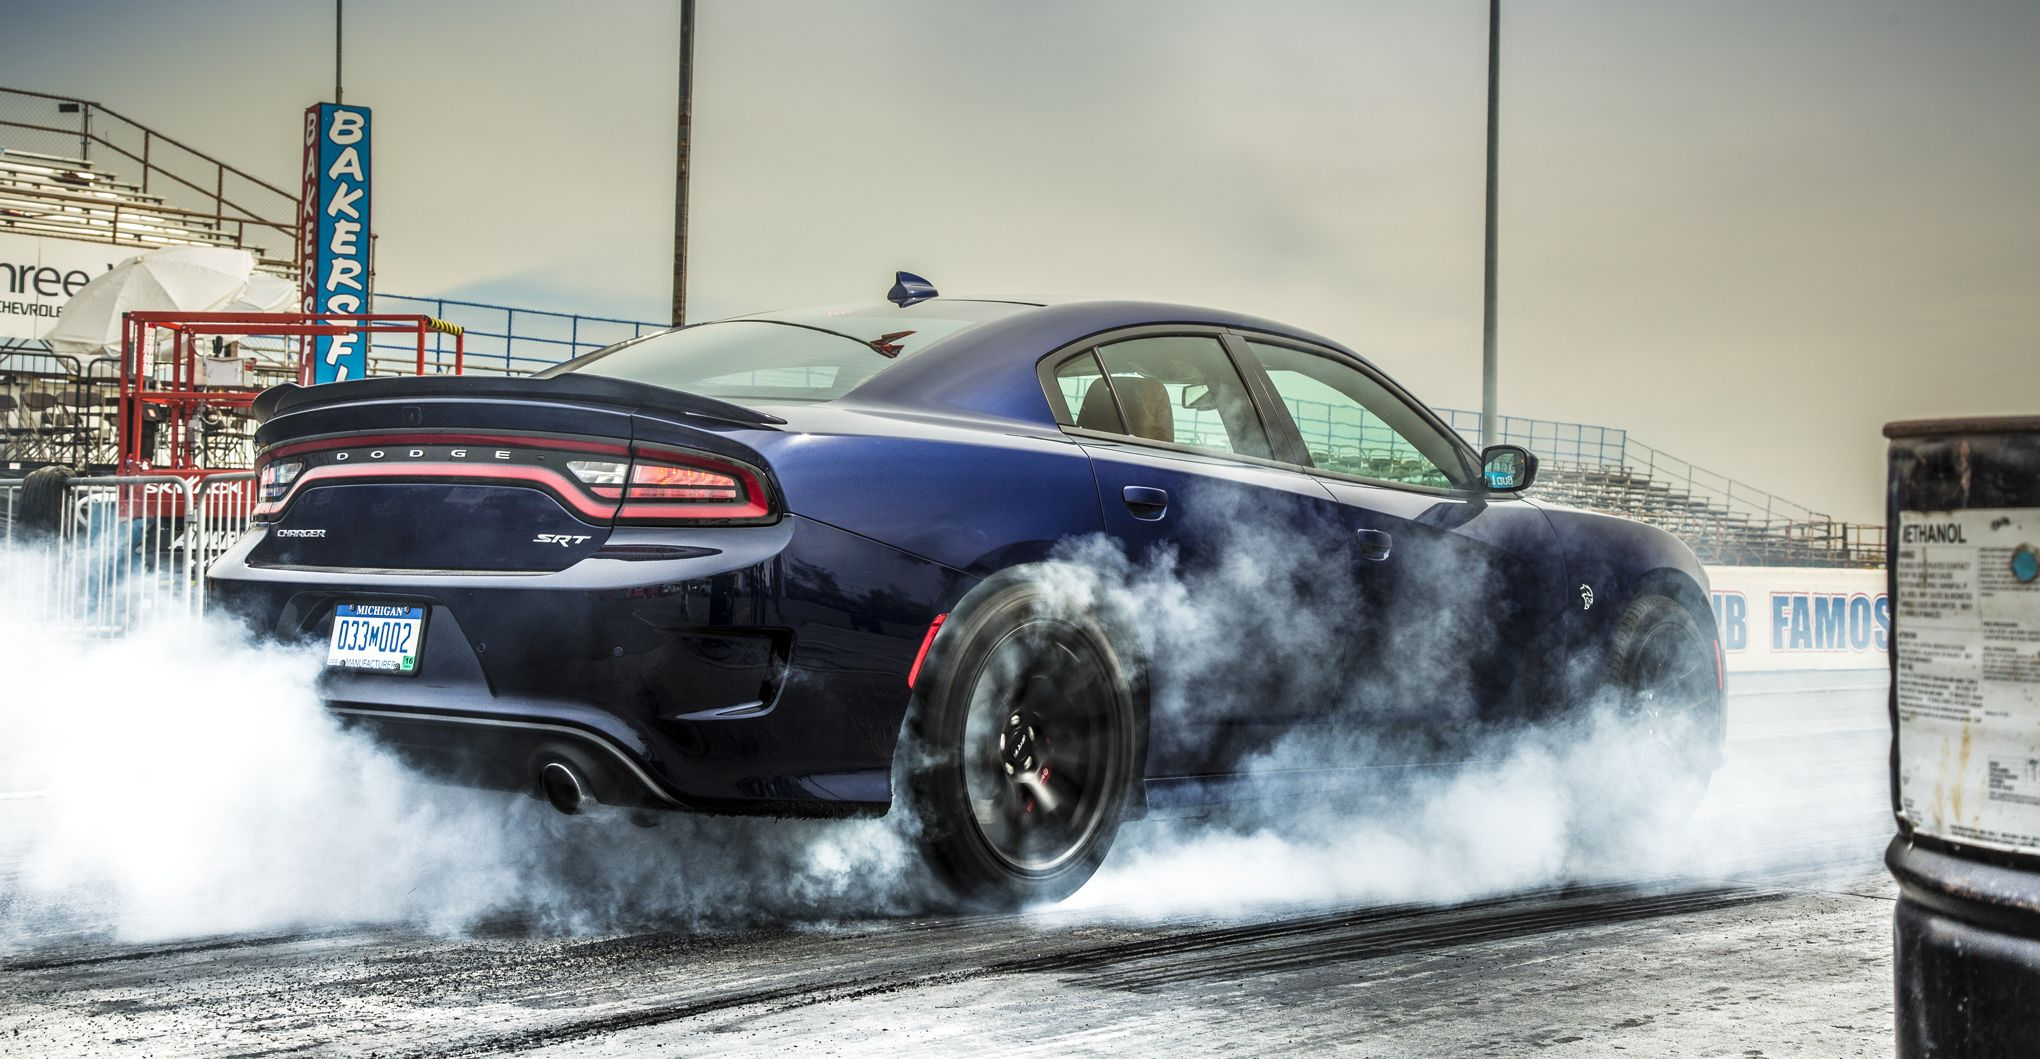 Four Door Sports Cars >> The 15 Fastest Four-Door Sedans On The Market   TheRichest